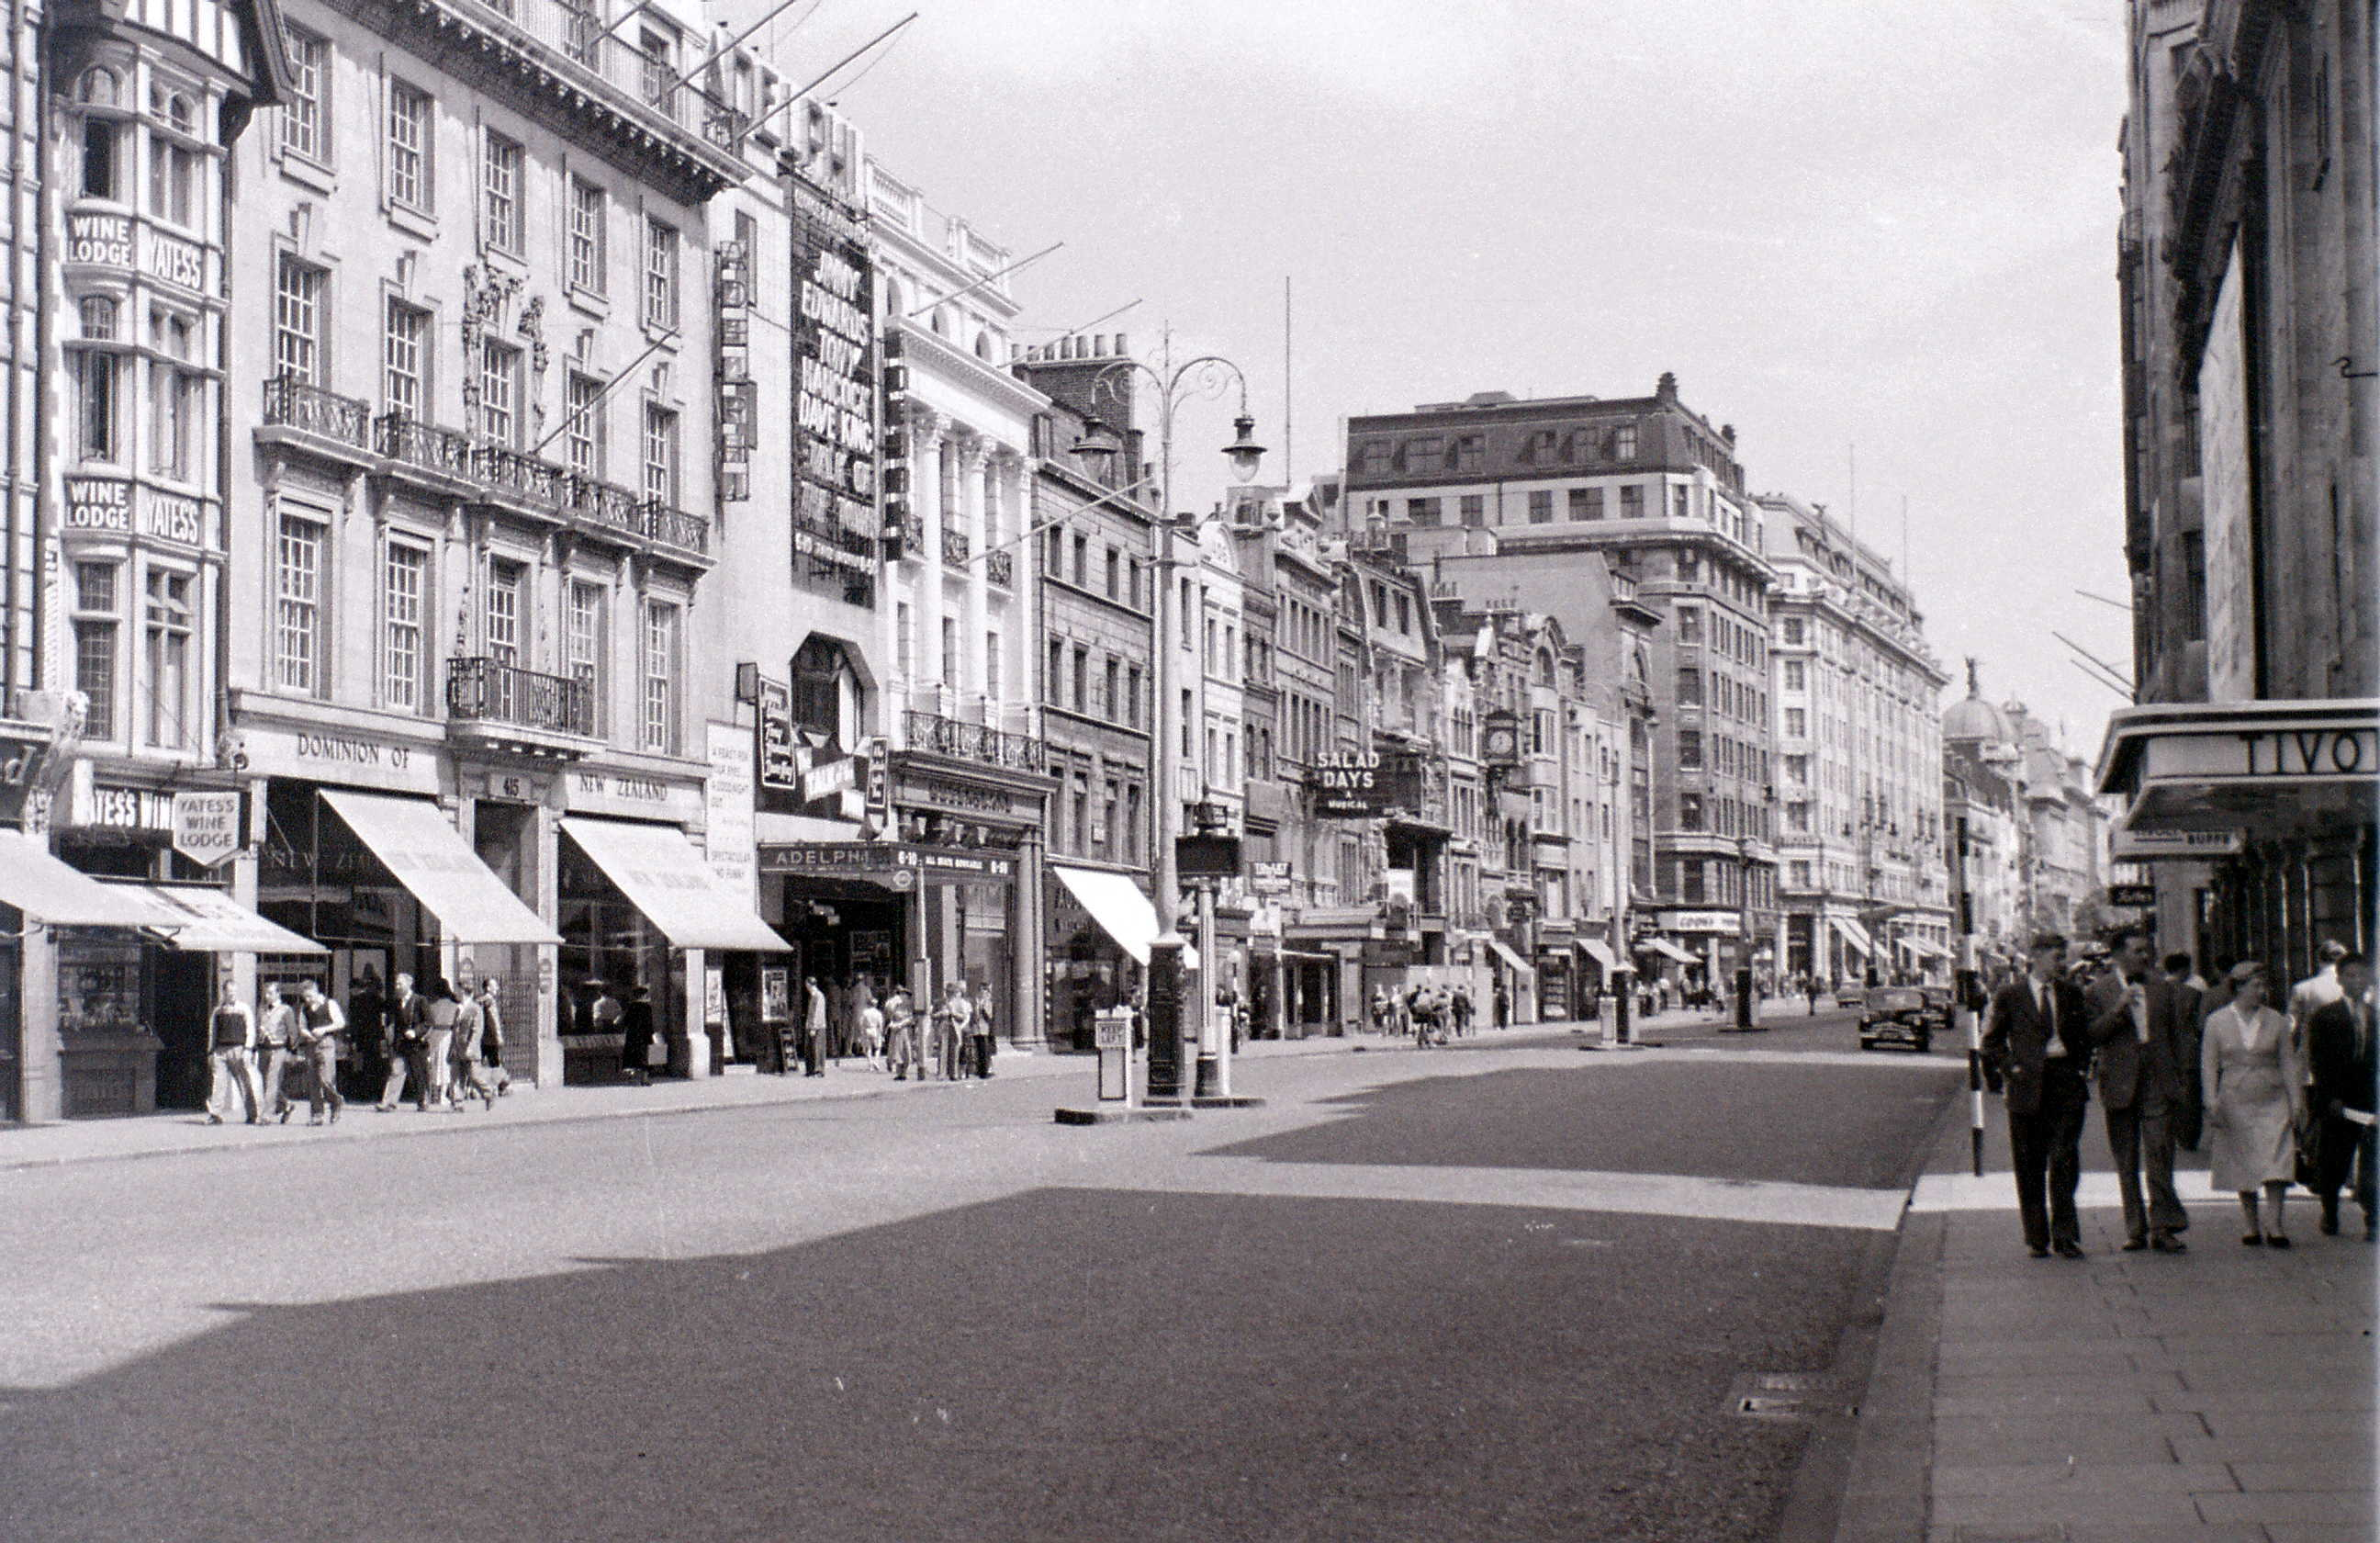 The Strand, London, 1 August 1955.